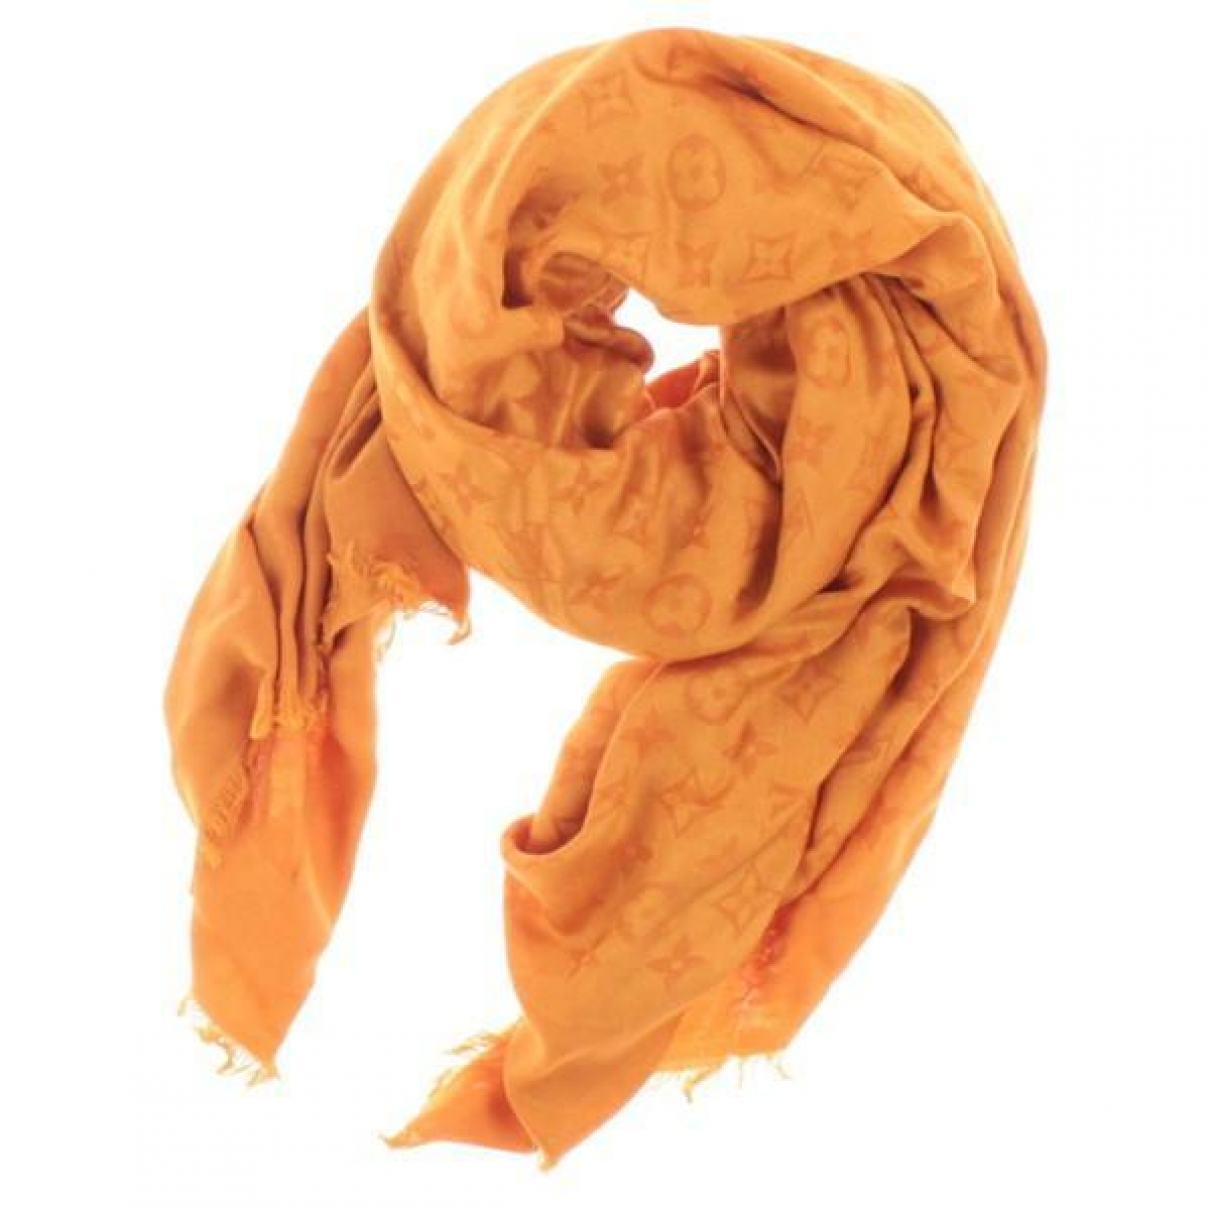 Louis Vuitton - Foulard Chale Monogram pour femme en soie - orange